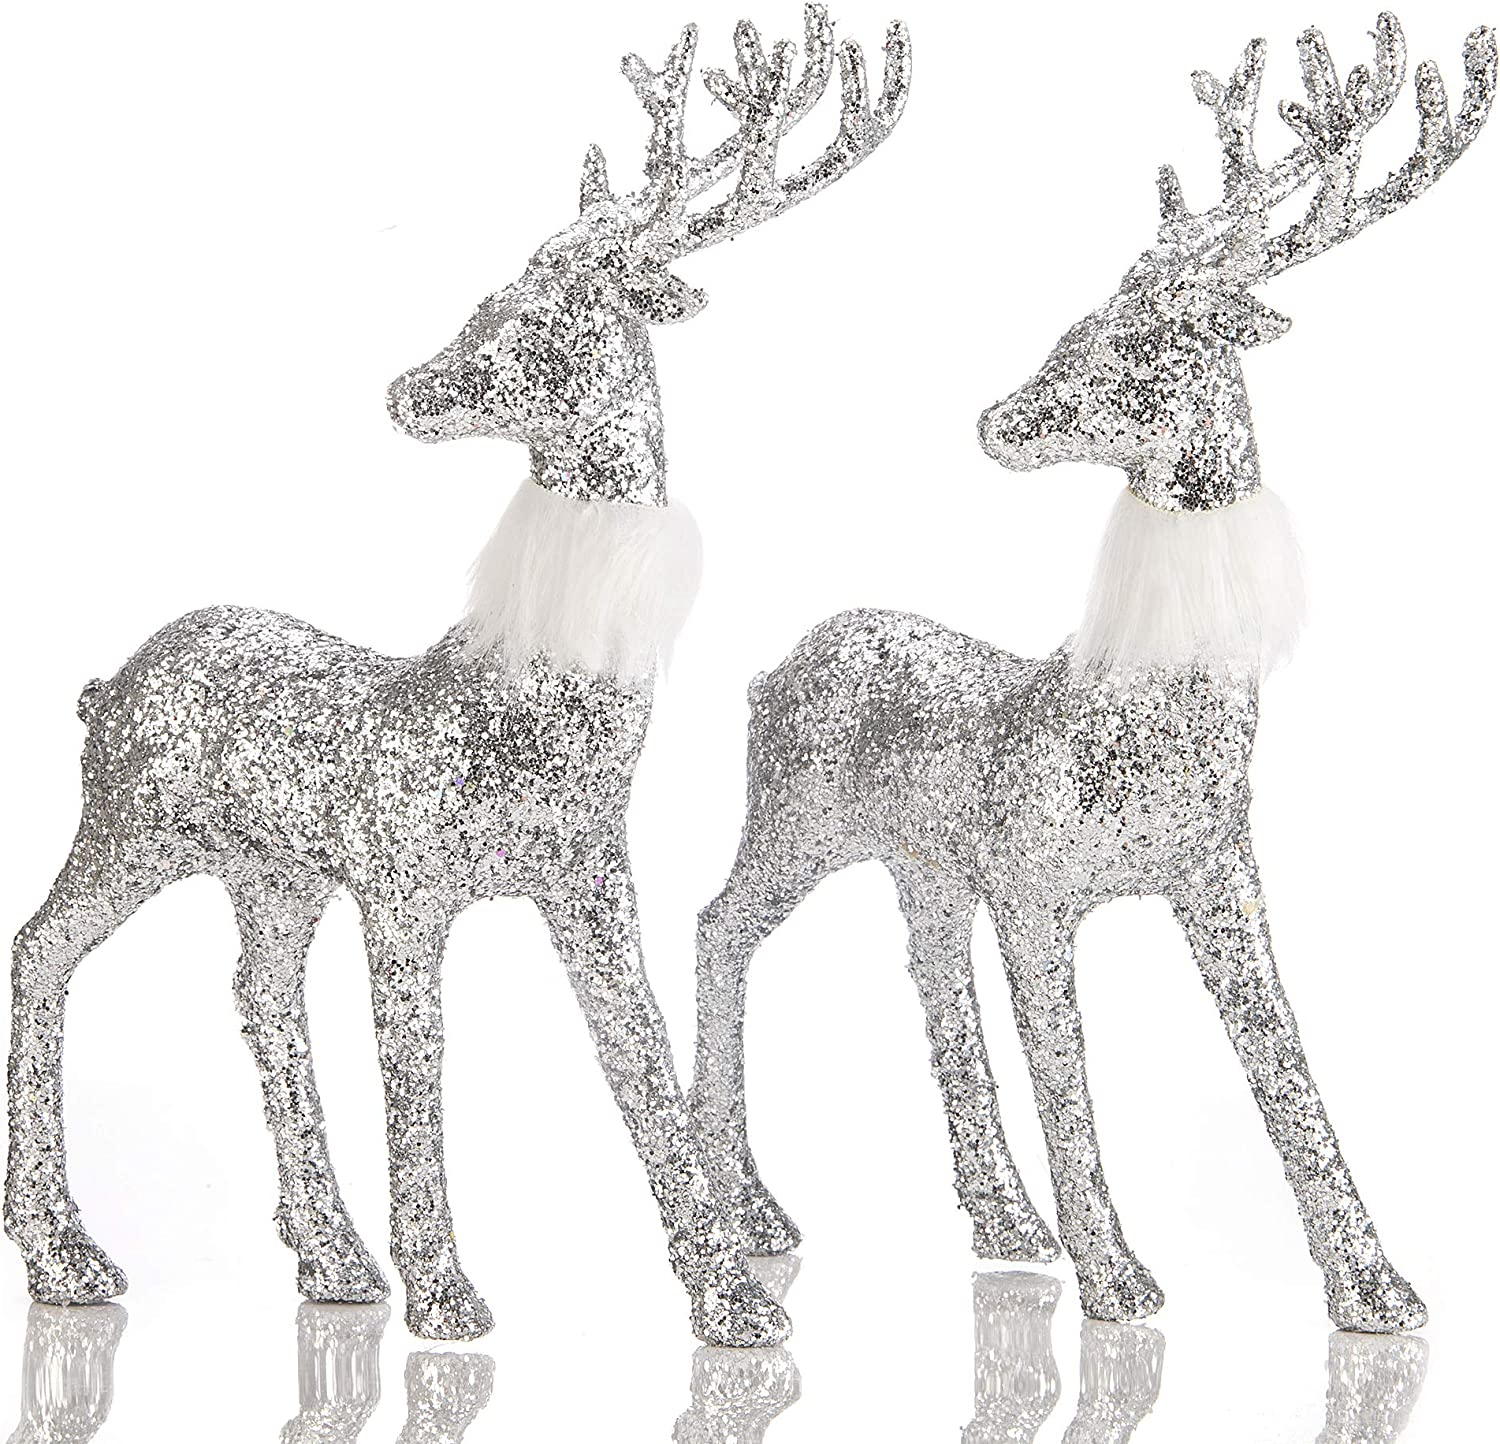 blitzlabs Christmas Silver Sequined Glitter Reindeer Winter Decor Stag Deer Ornament Figurines Freestanding Indoor Decorative for Tabletop , Kitchen ,Mantle, Shelf ,Desk ,Office etc,Set of 2